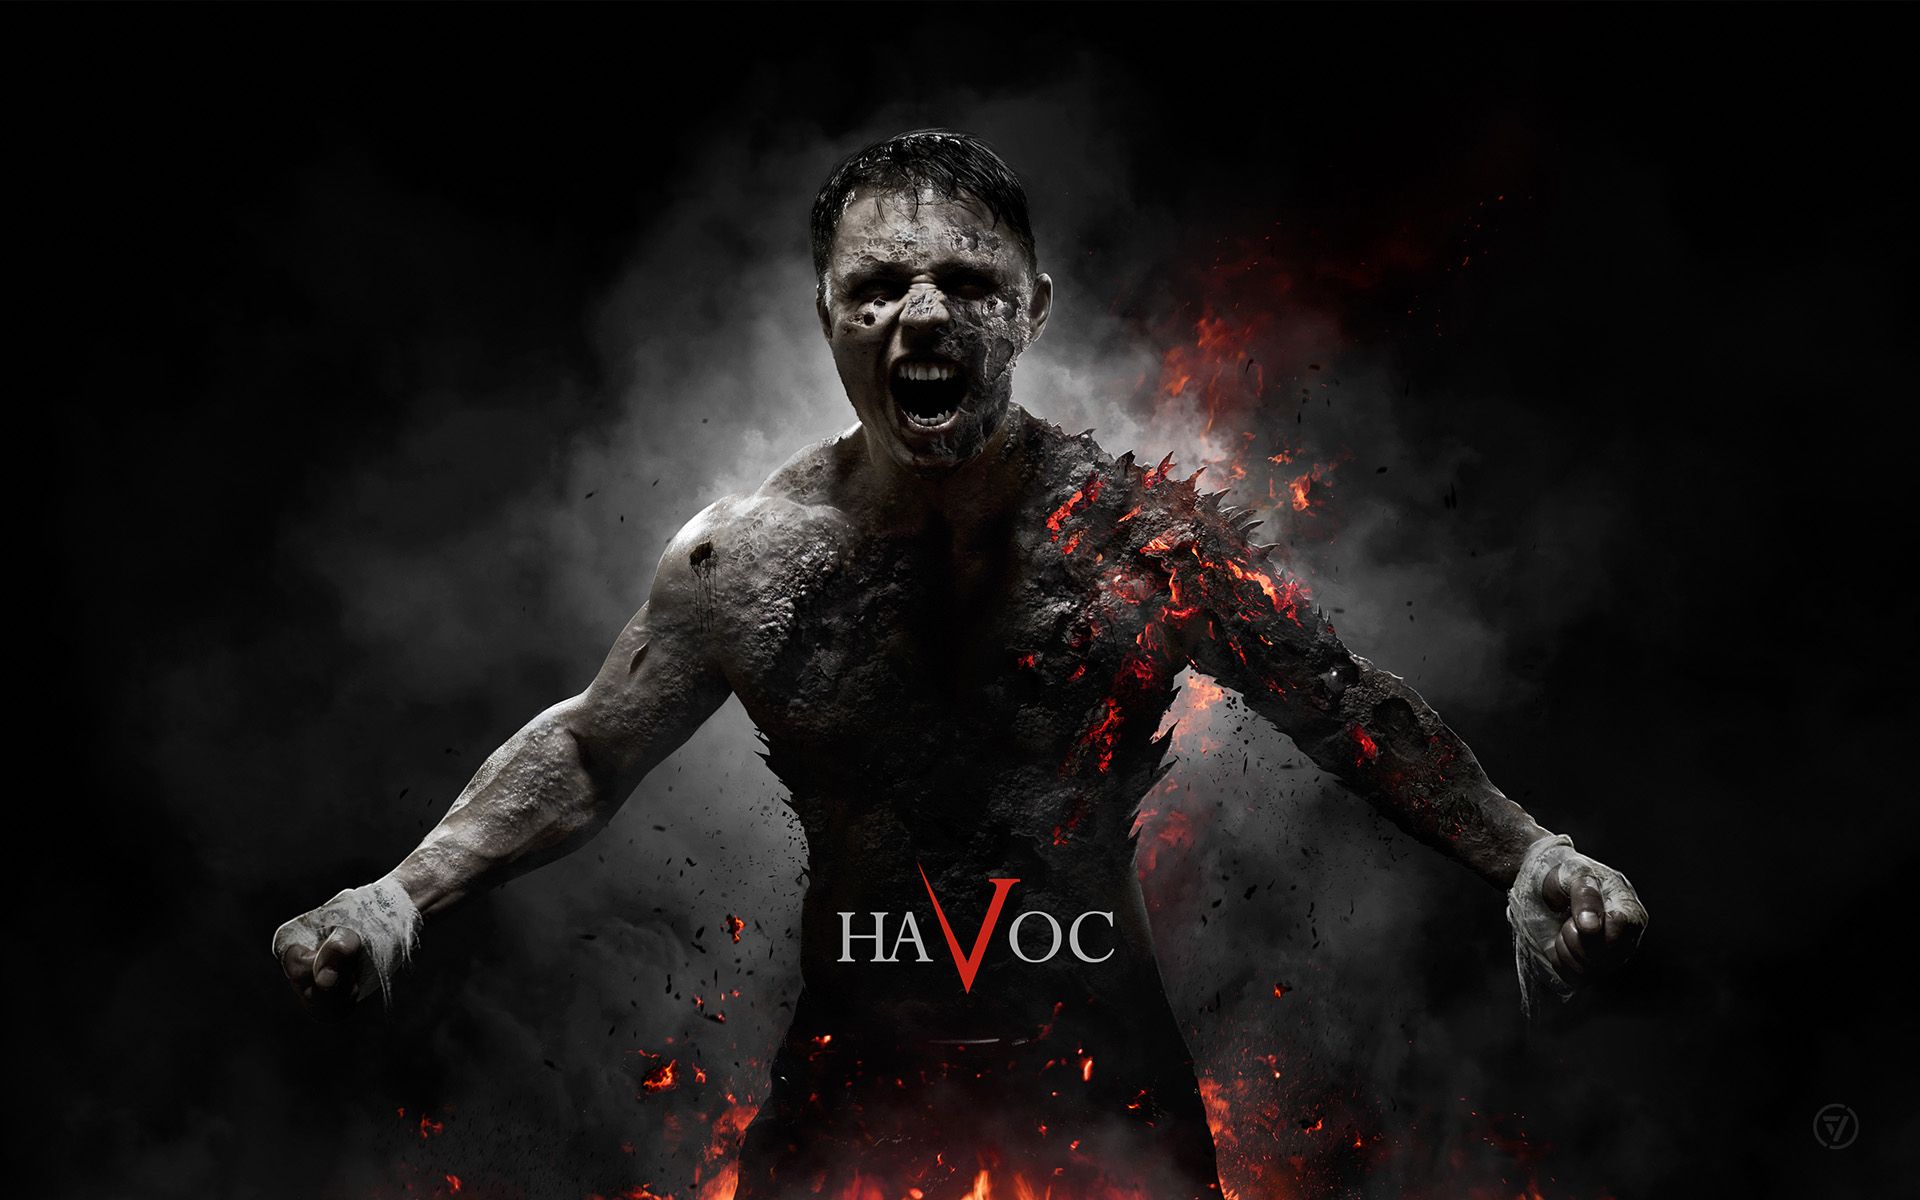 Havoc for 1920 x 1200 widescreen resolution